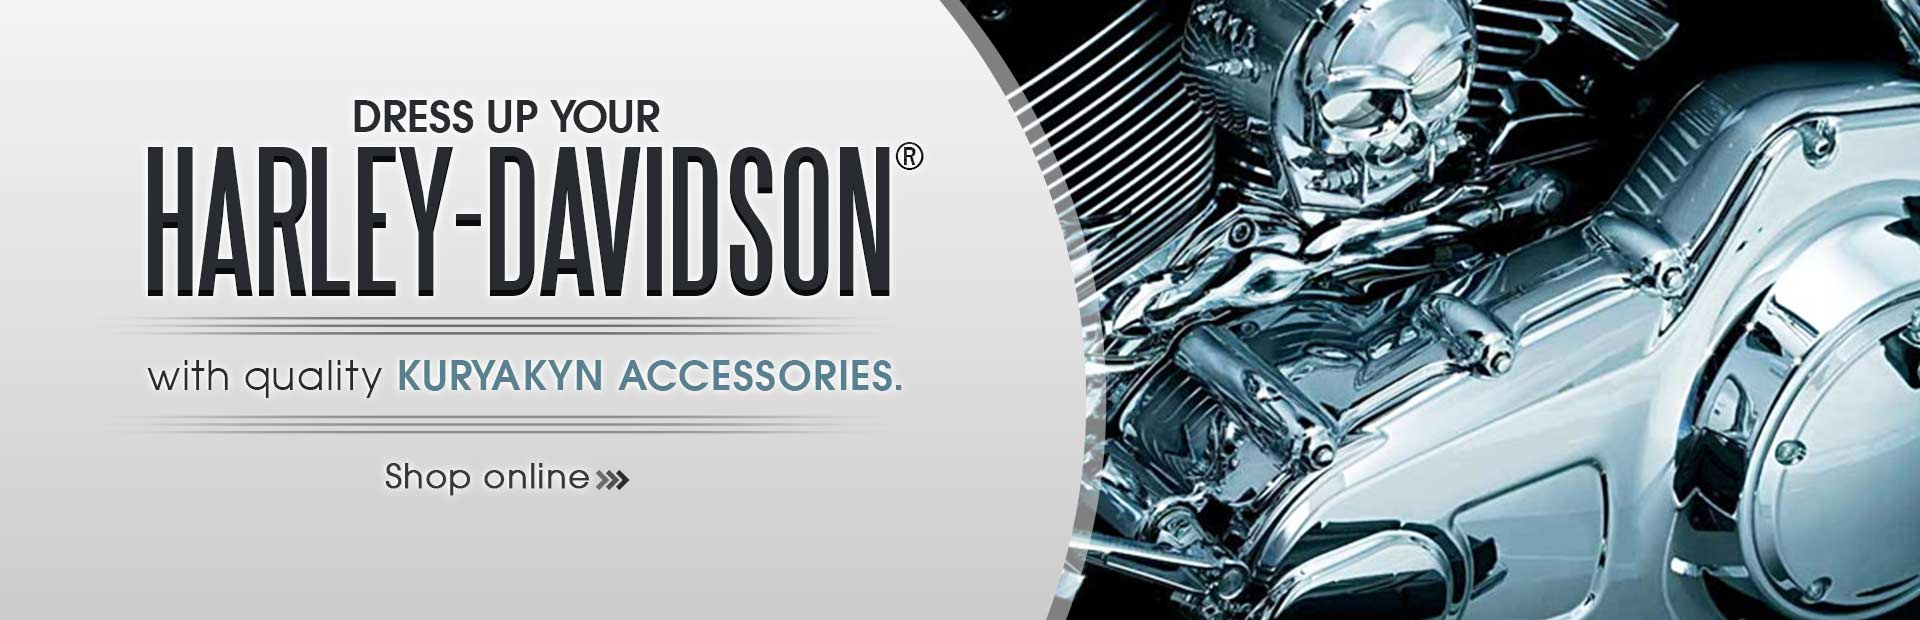 Click here to shop our selection of quality Kuryakyn accessories for your Harley-Davidson®!